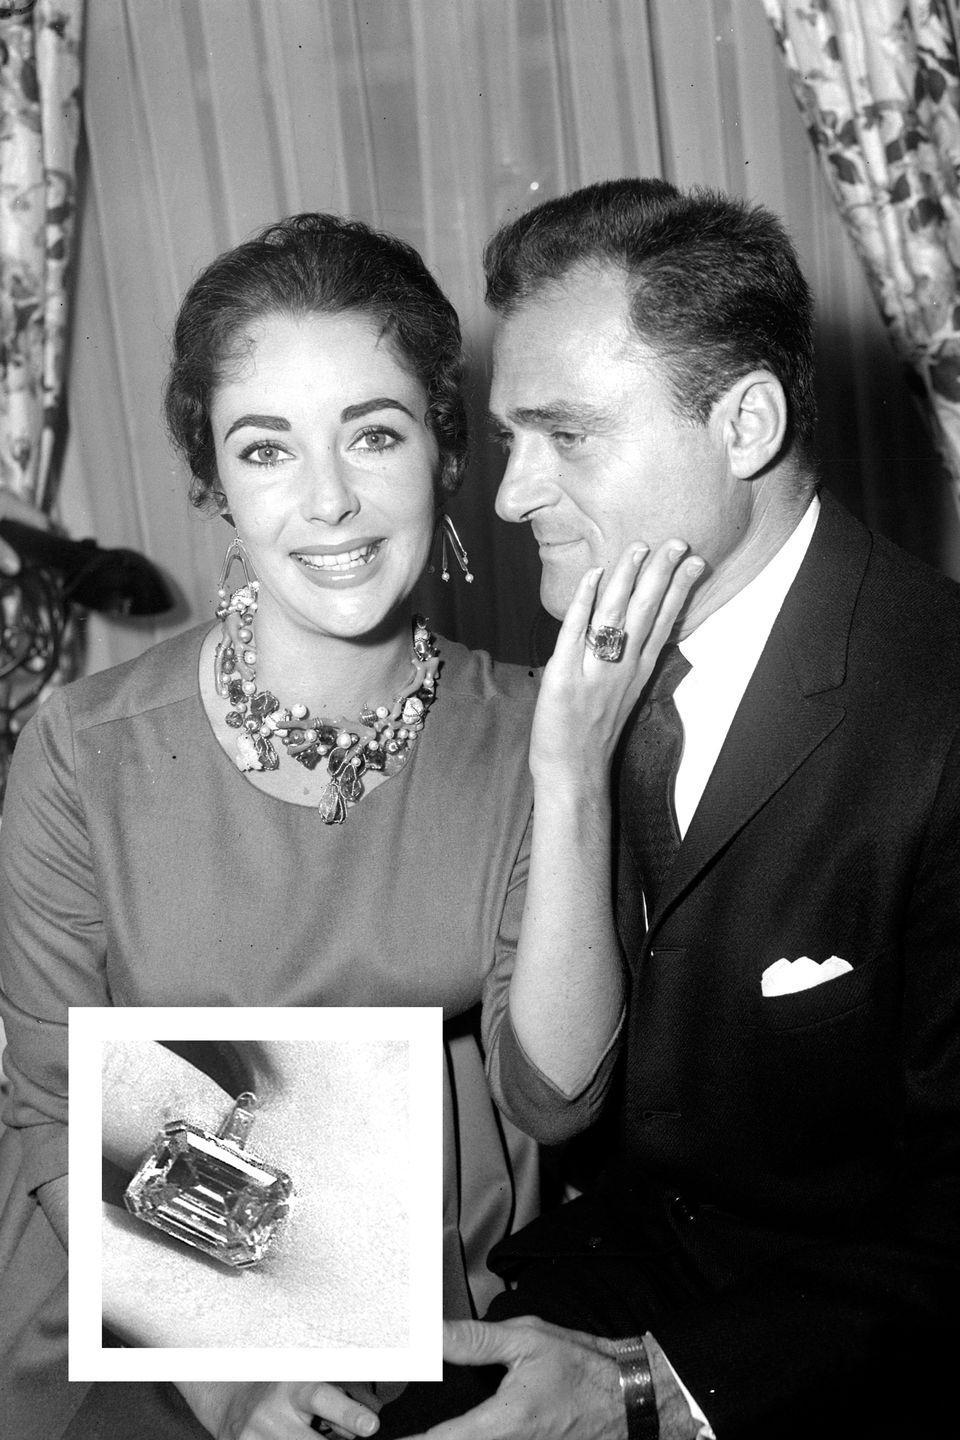 """<p>In 1957, <a href=""""https://www.townandcountrymag.com/leisure/g2117/rare-photos-elizabeth-taylor/"""" rel=""""nofollow noopener"""" target=""""_blank"""" data-ylk=""""slk:Taylor married her third husband"""" class=""""link rapid-noclick-resp"""">Taylor married her third husband</a>, theater and film producer Mike Todd. Todd proposed with a whopping 29.4 carat emerald-cut diamond ring, a stone so large that Taylor referred to it as her """"ice skating rink,"""" <a href=""""https://go.redirectingat.com?id=74968X1596630&url=https%3A%2F%2Fwww.theknot.com%2Fcontent%2Fcelebrity-trendsetting-engagement-rings&sref=https%3A%2F%2Fwww.townandcountrymag.com%2Fstyle%2Fjewelry-and-watches%2Fg15338229%2Fbest-celebrity-engagement-rings%2F"""" rel=""""nofollow noopener"""" target=""""_blank"""" data-ylk=""""slk:The Knot reports."""" class=""""link rapid-noclick-resp""""><em>The Knot </em>reports.</a> It was sold at auction in 2011 for $3.7 million, <a href=""""https://www.vogue.com/article/best-celebrity-engagement-rings-kim-kardashian-kate-middleton"""" rel=""""nofollow noopener"""" target=""""_blank"""" data-ylk=""""slk:according to Vogue."""" class=""""link rapid-noclick-resp"""">according to <em>Vogue.</em></a><br></p>"""